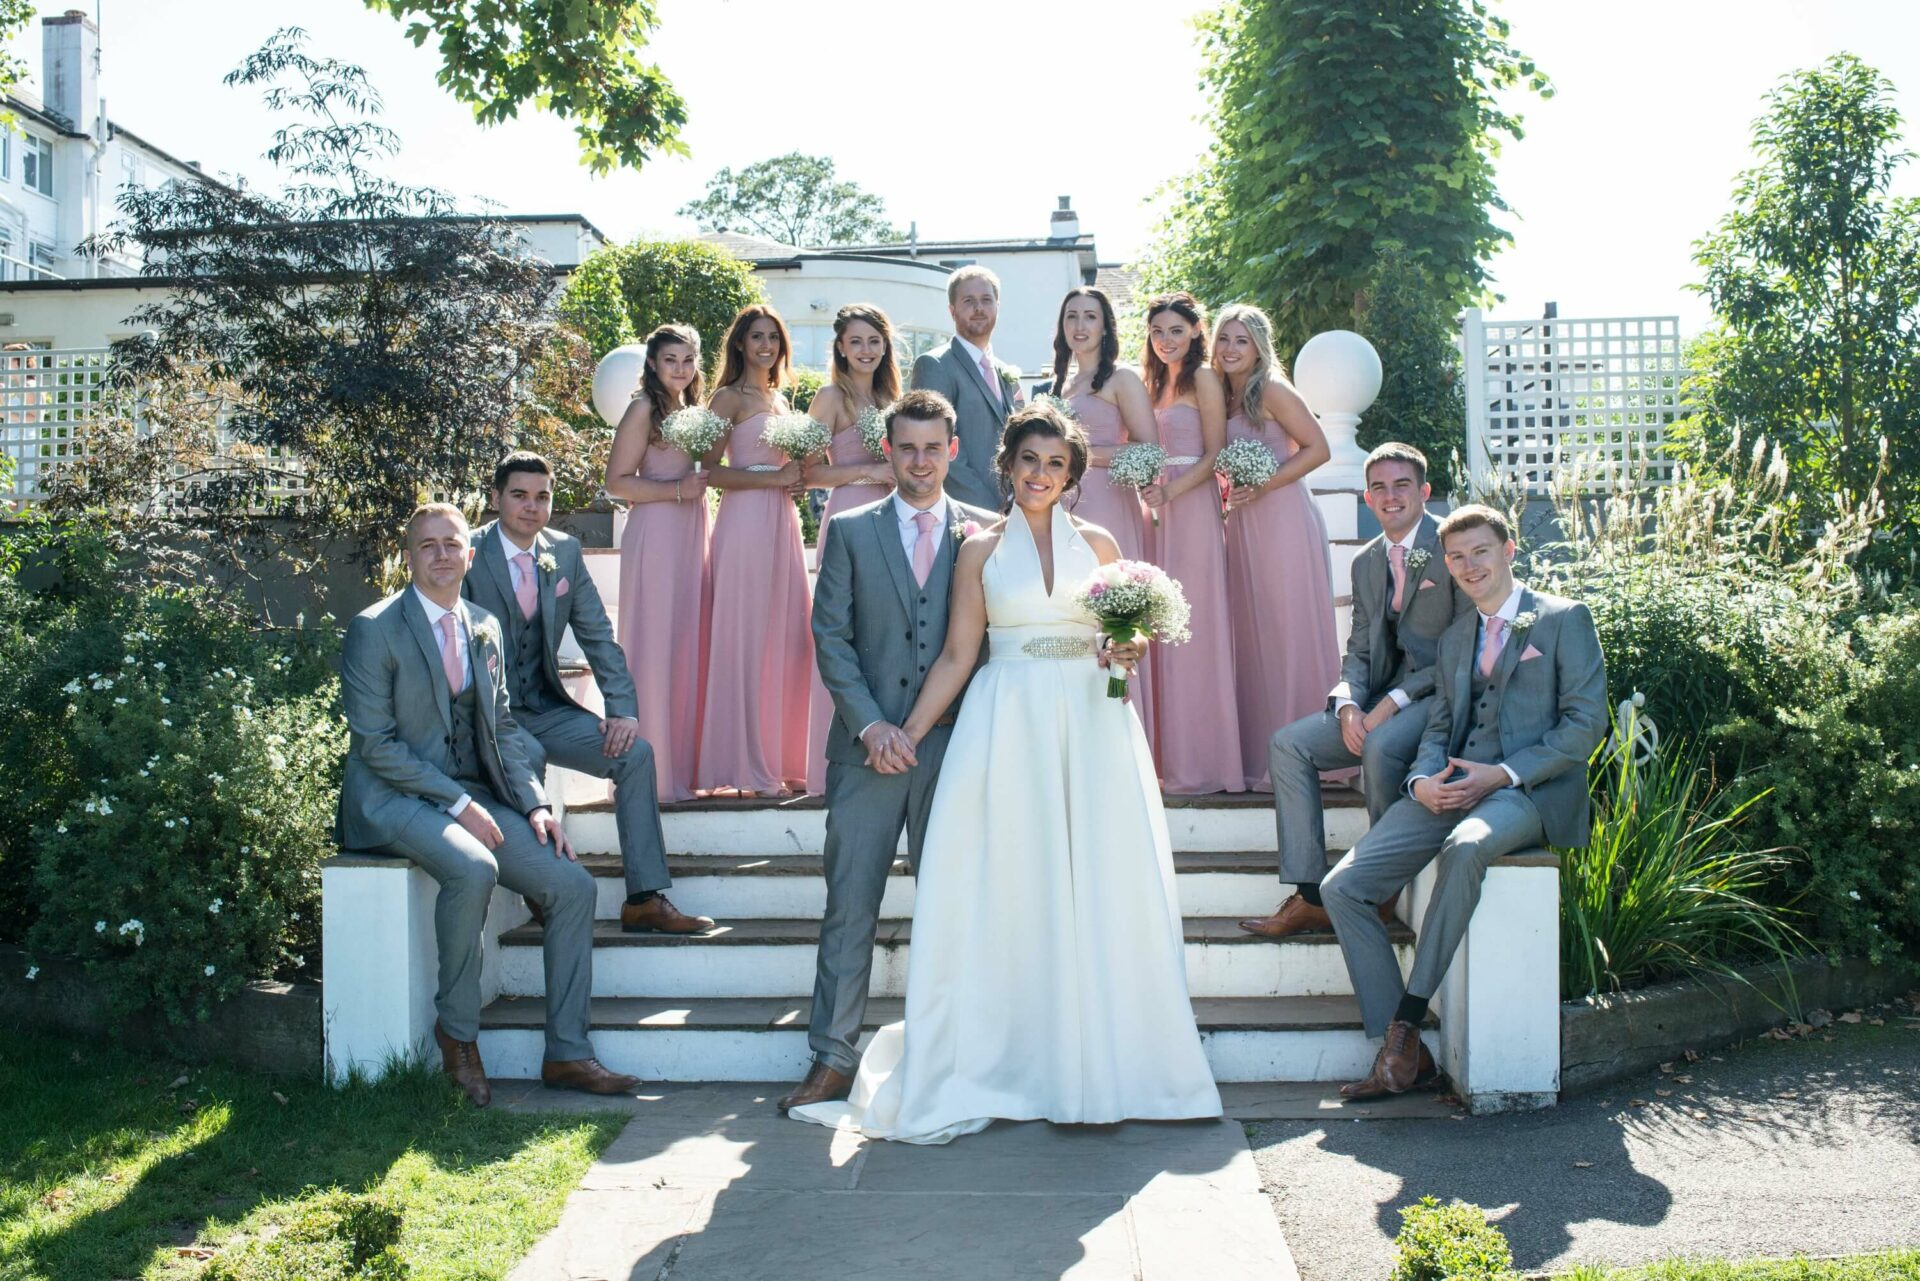 Summer Weddings at Warwick House